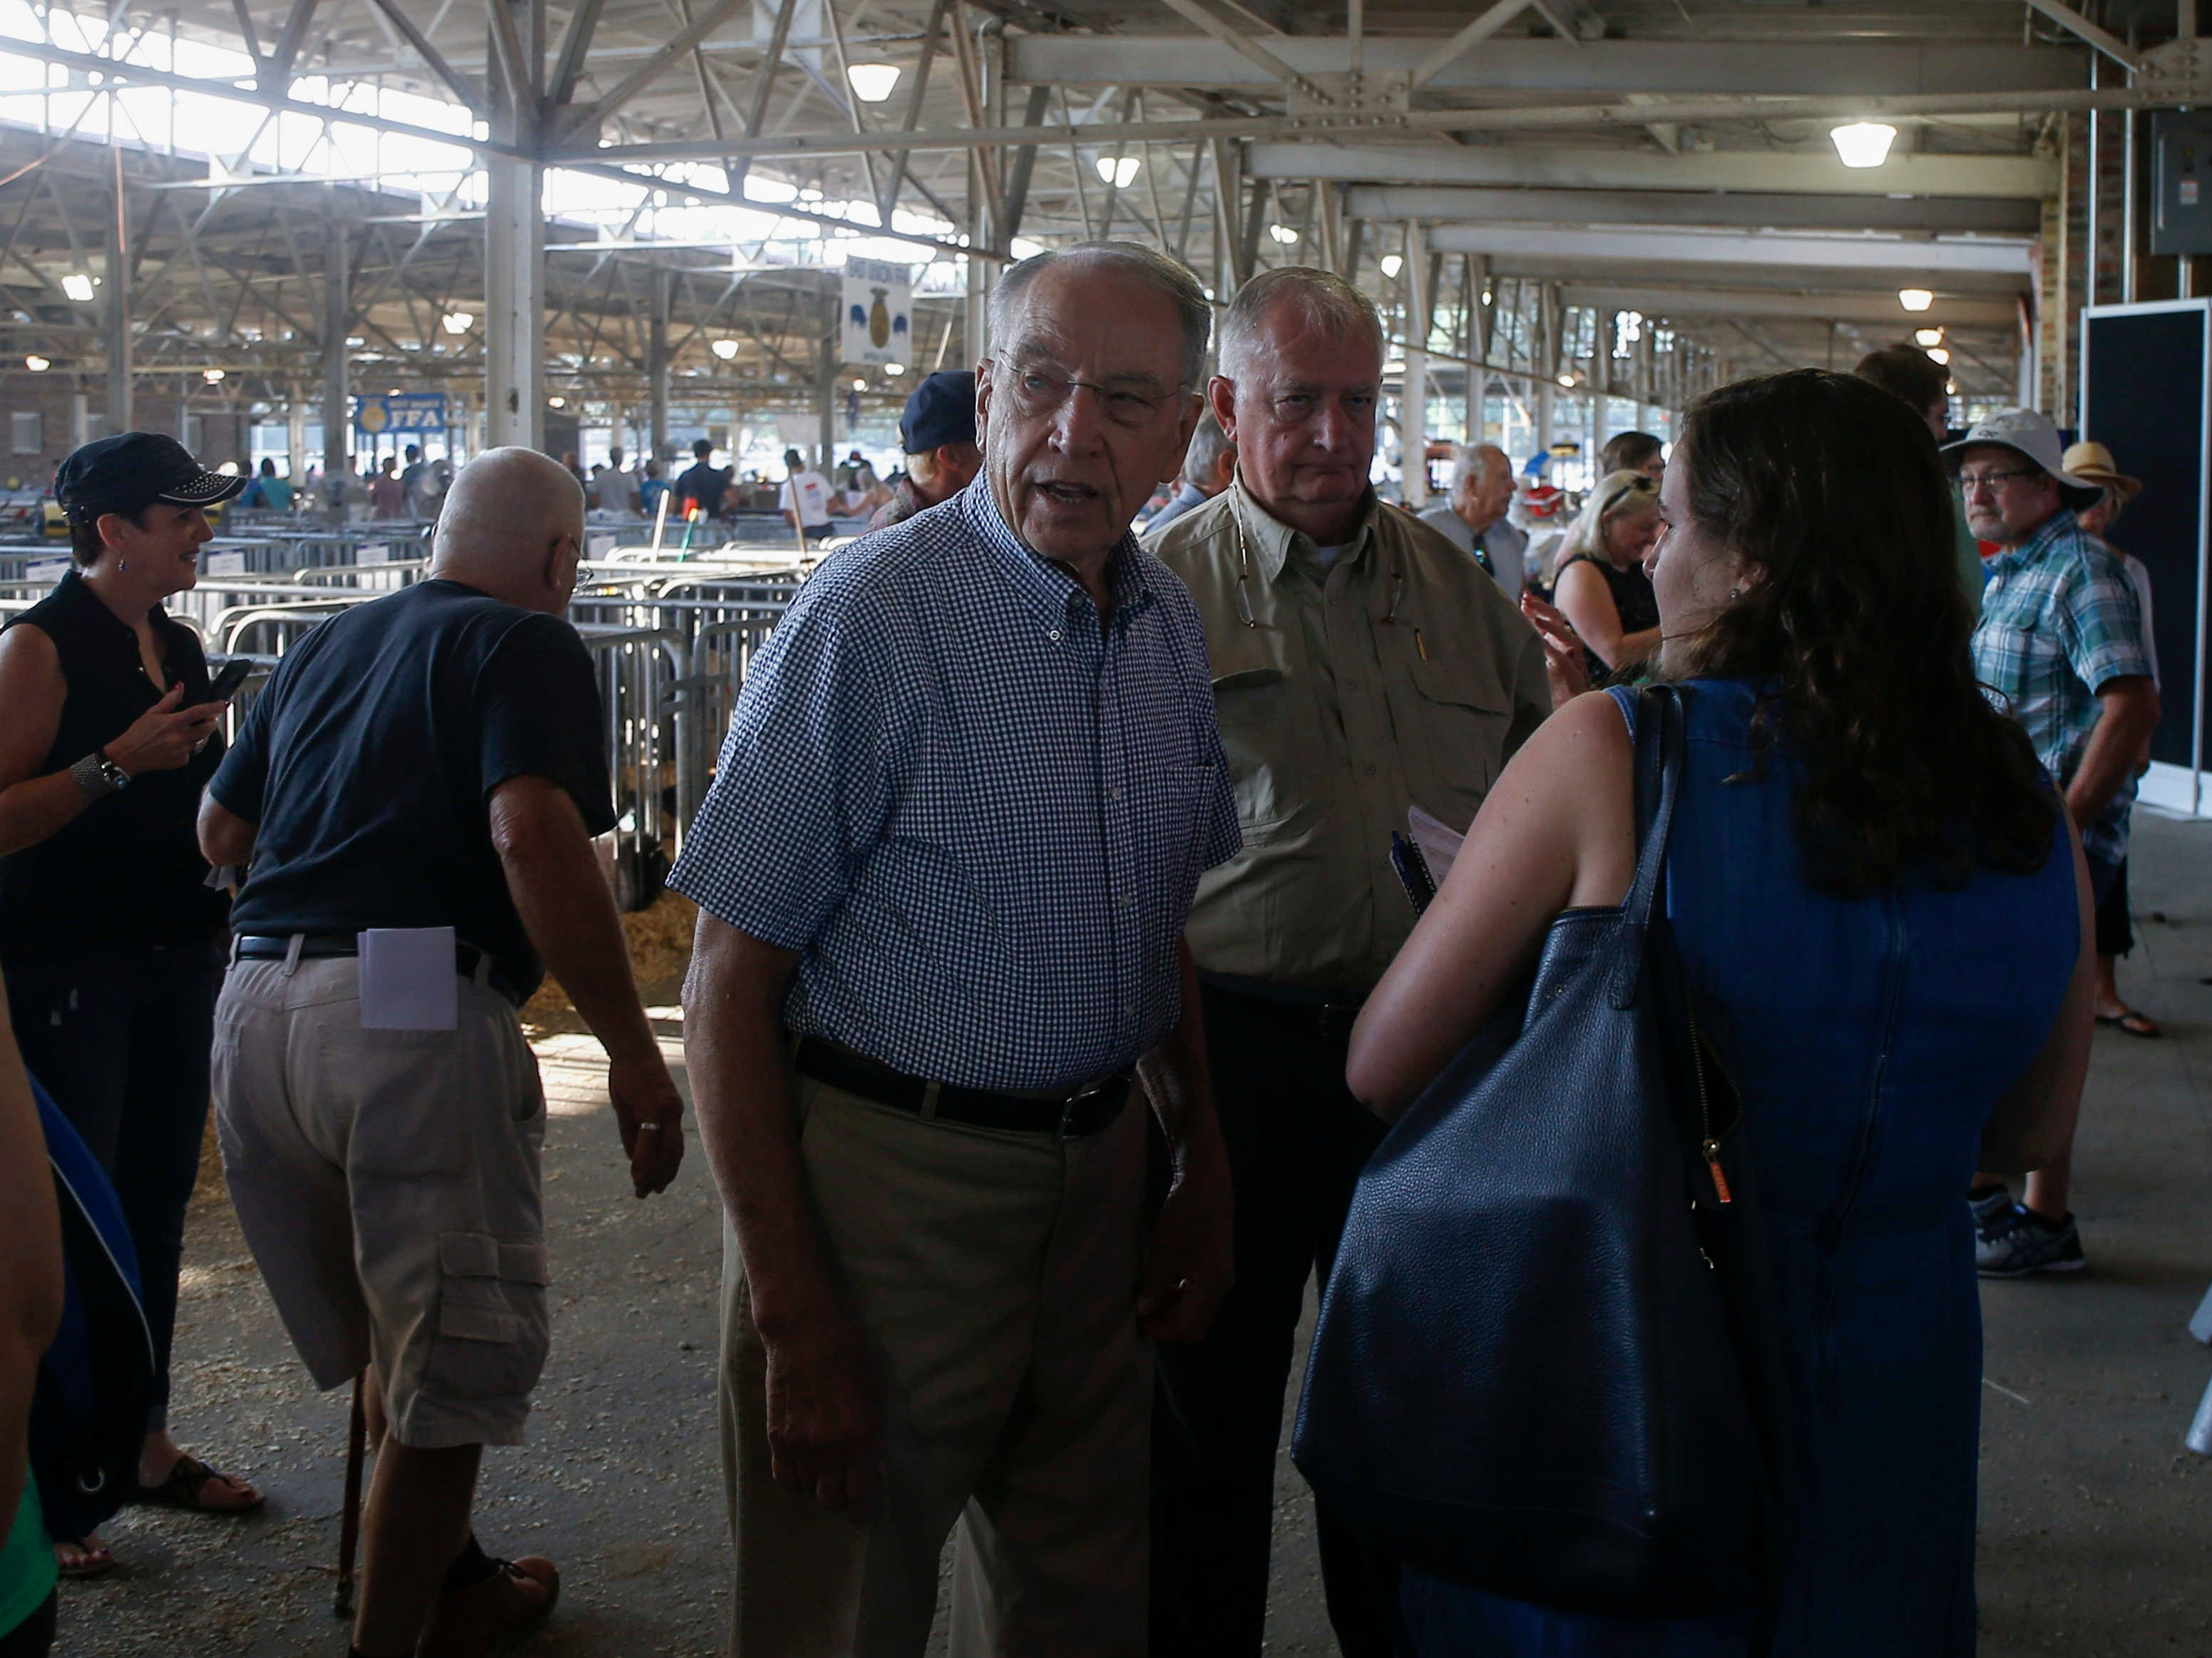 U.S. Sen. Charles Grassley (R-Iowa) meets with supporters near the Big Boar pens at the swine barn on Friday, Aug. 10, 2018, at the Iowa State Fair in Des Moines.